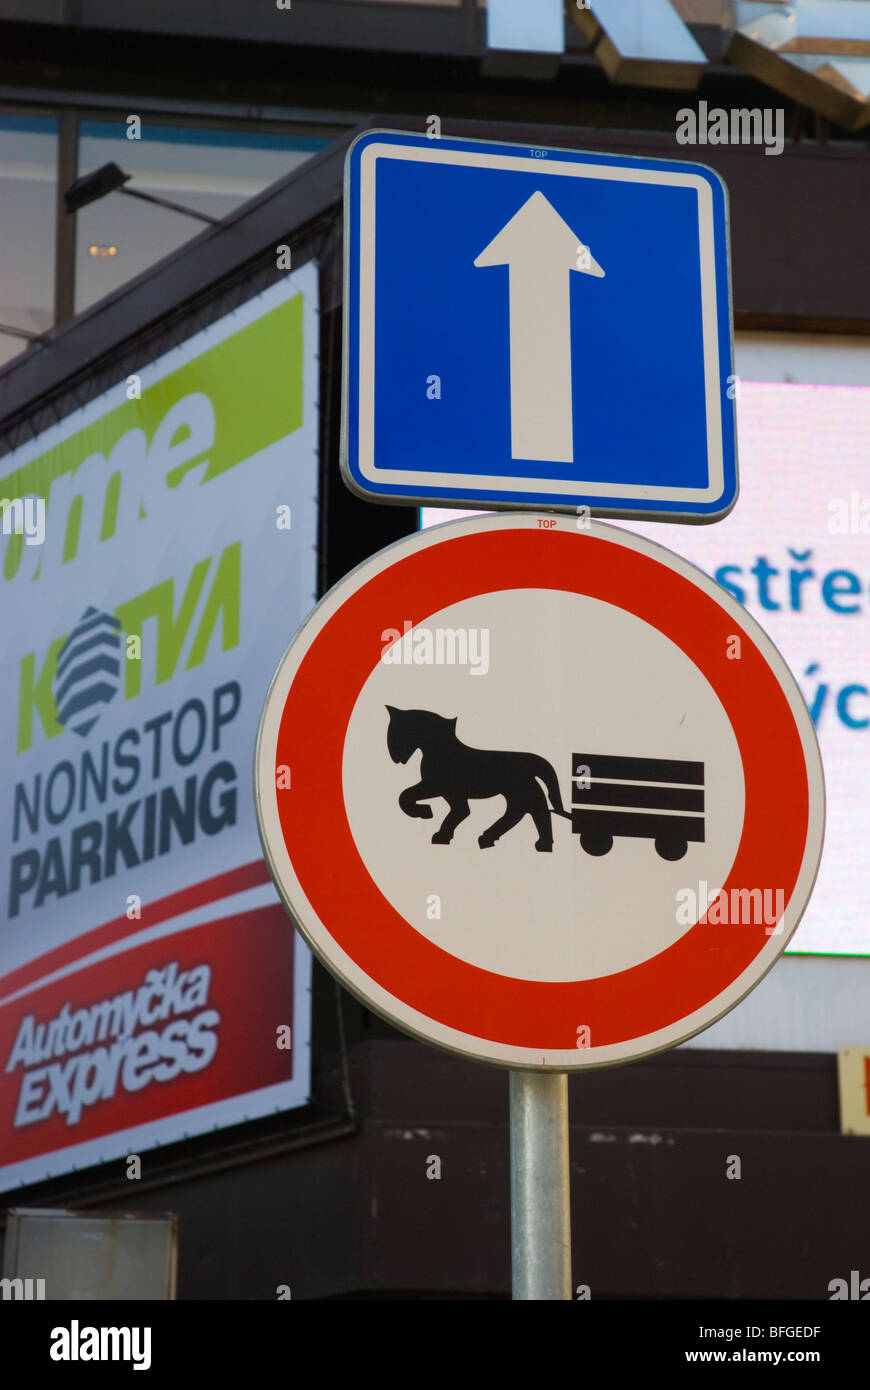 No workhorse carriages allowed in Stare Mesto the old town in Prague Czech Republic Europe - Stock Image